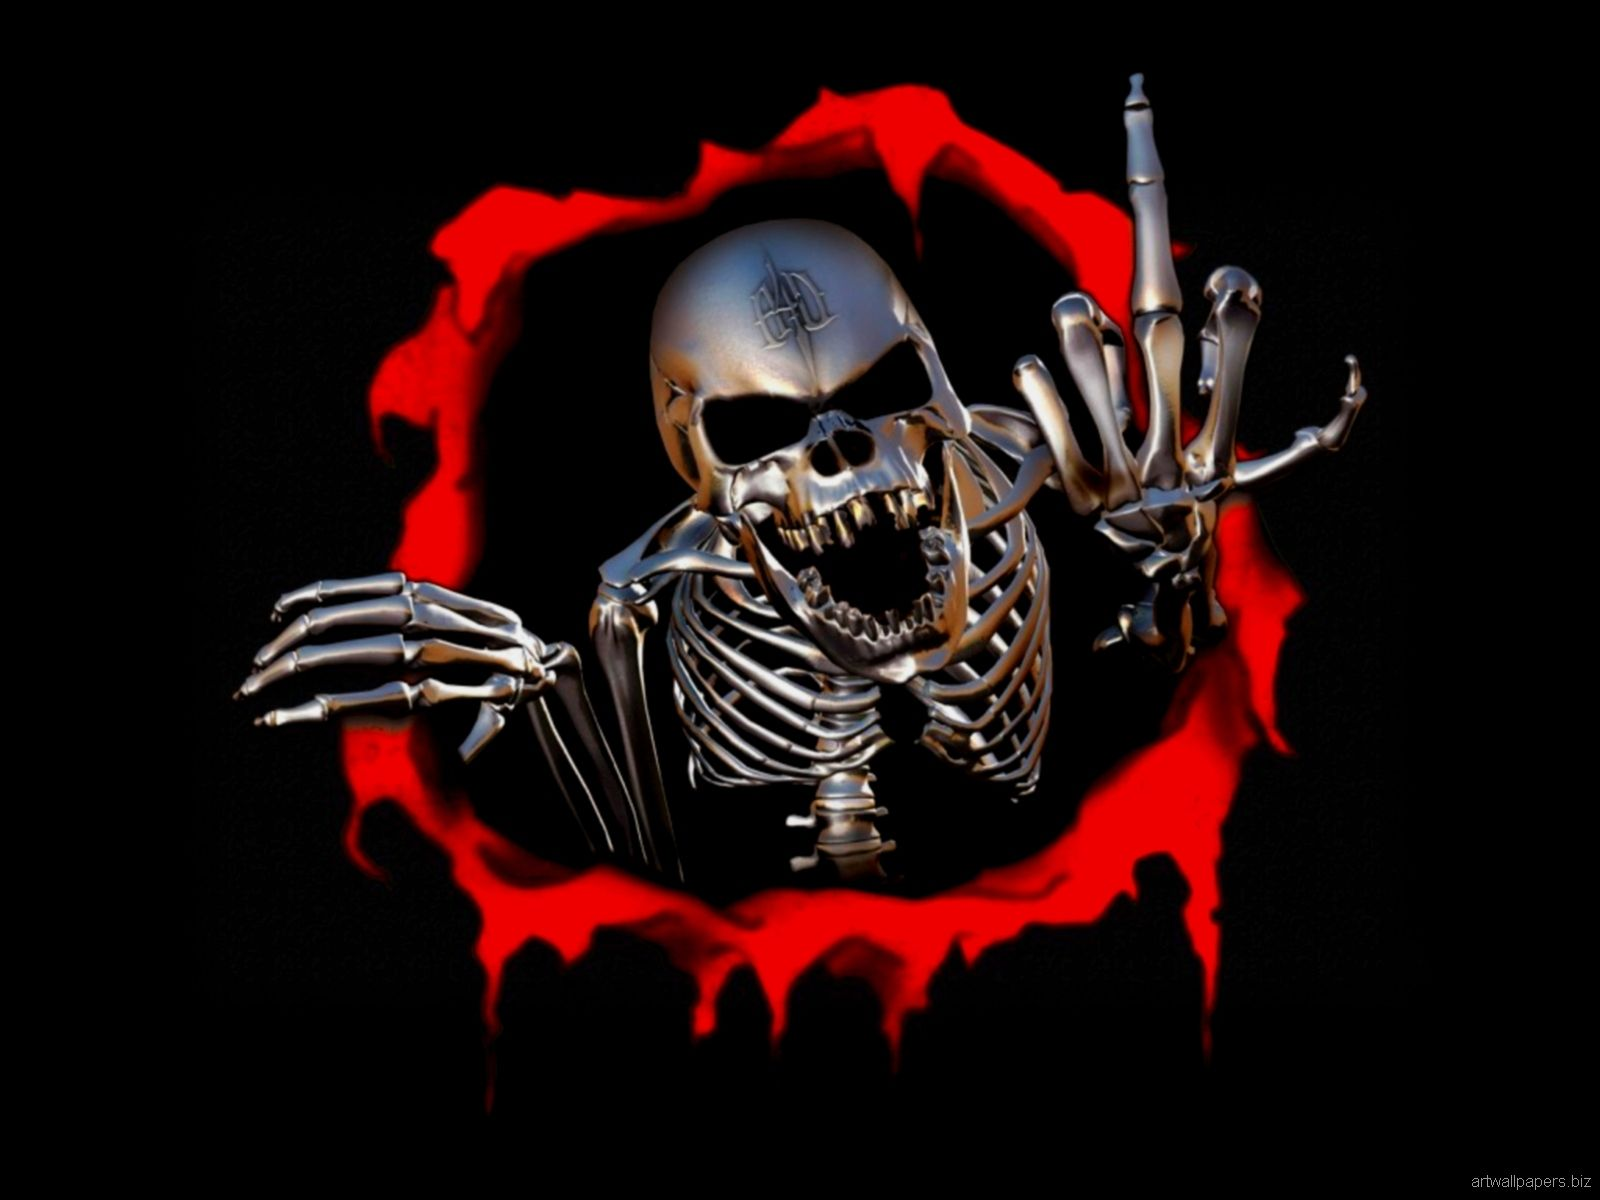 Awesome Skull Wallpapers - Top Free Awesome Skull